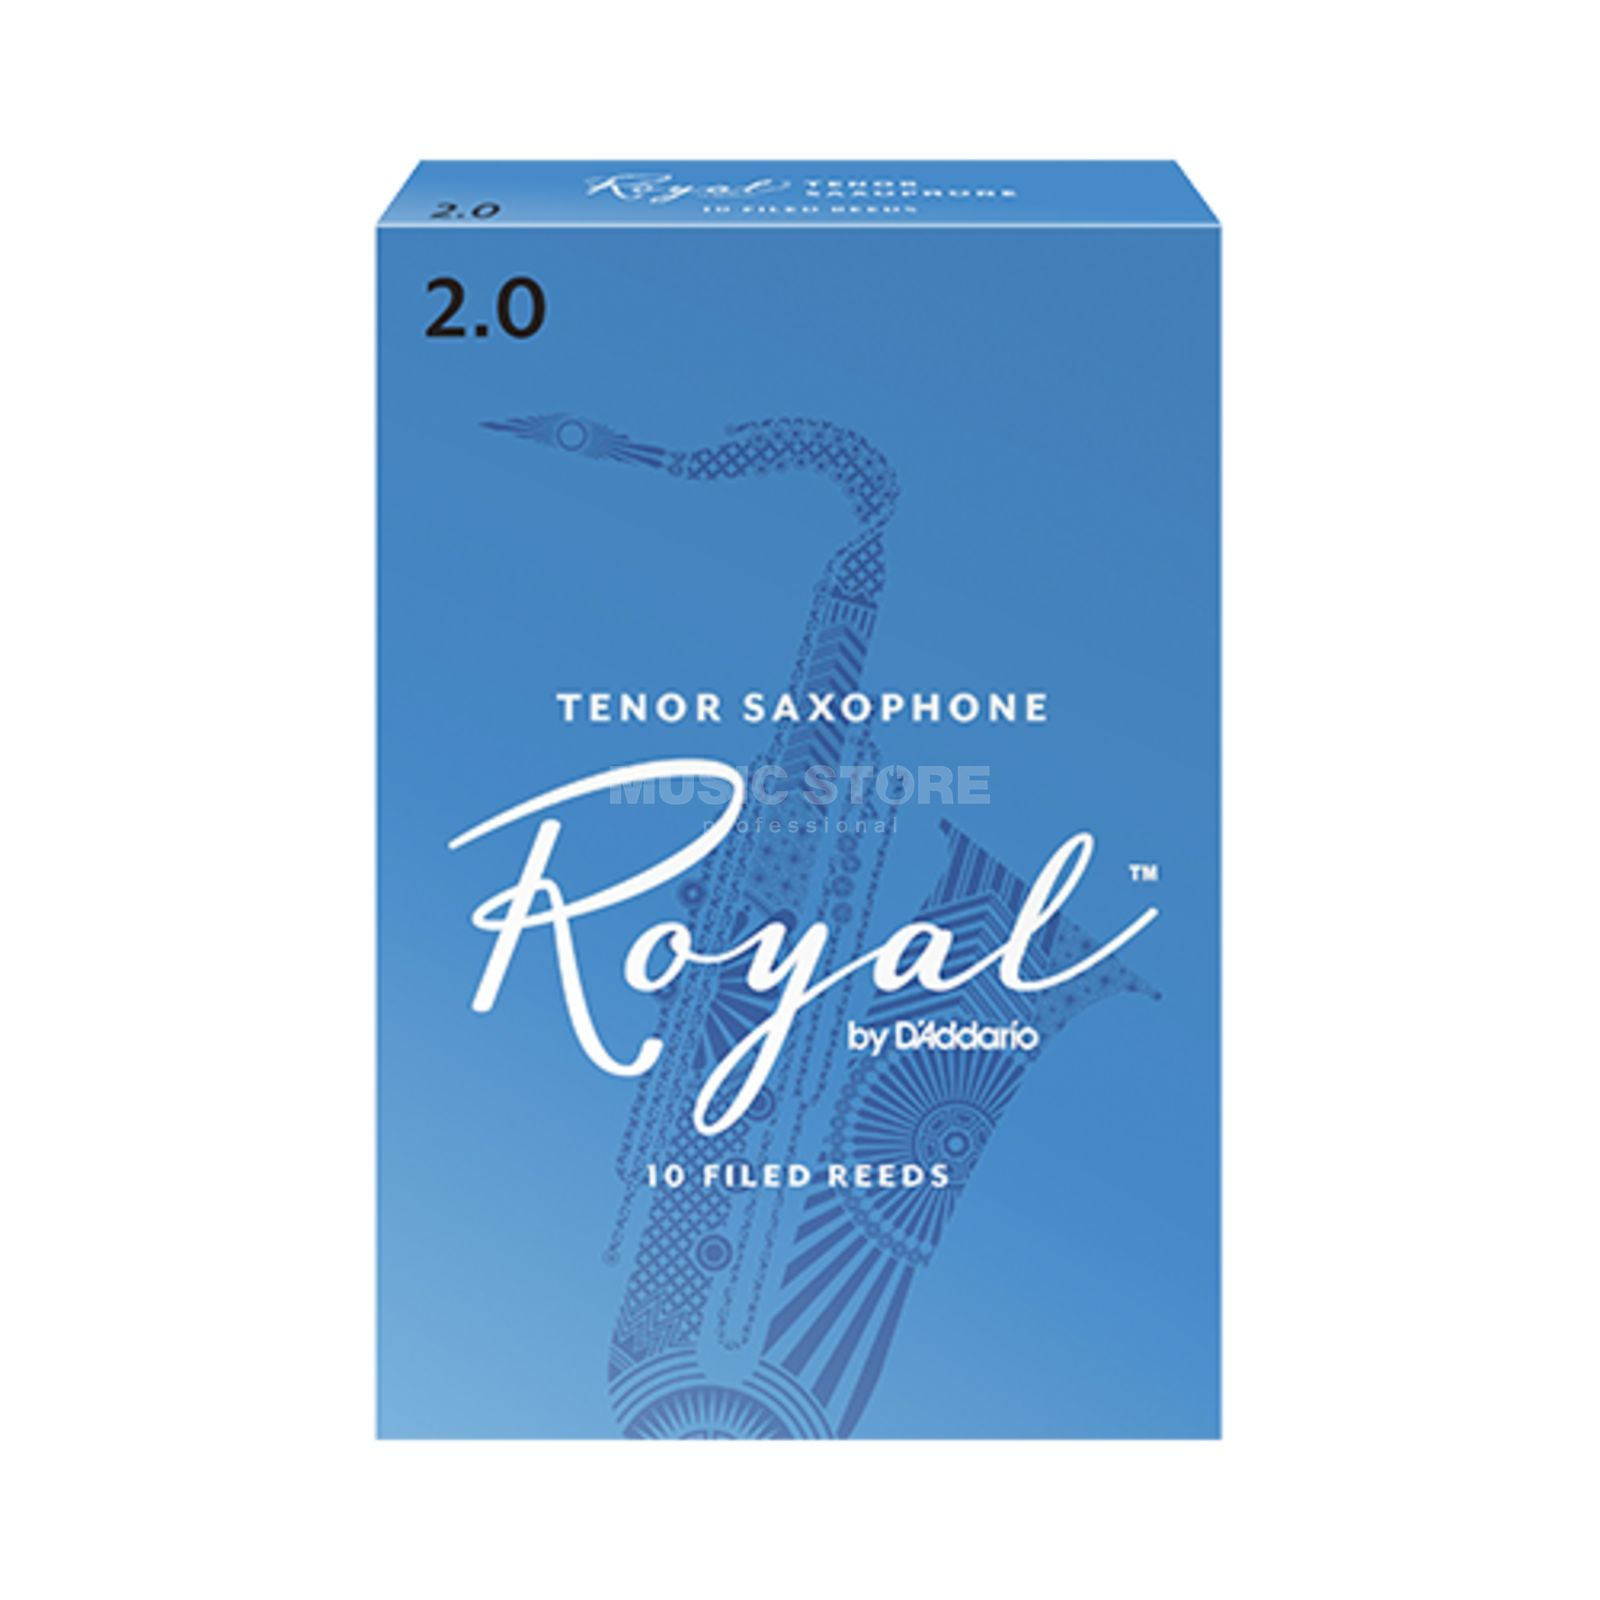 D'Addario Woodwinds Rico Royal 2 Tenor Saxophone Reeds Box of 10 Product Image